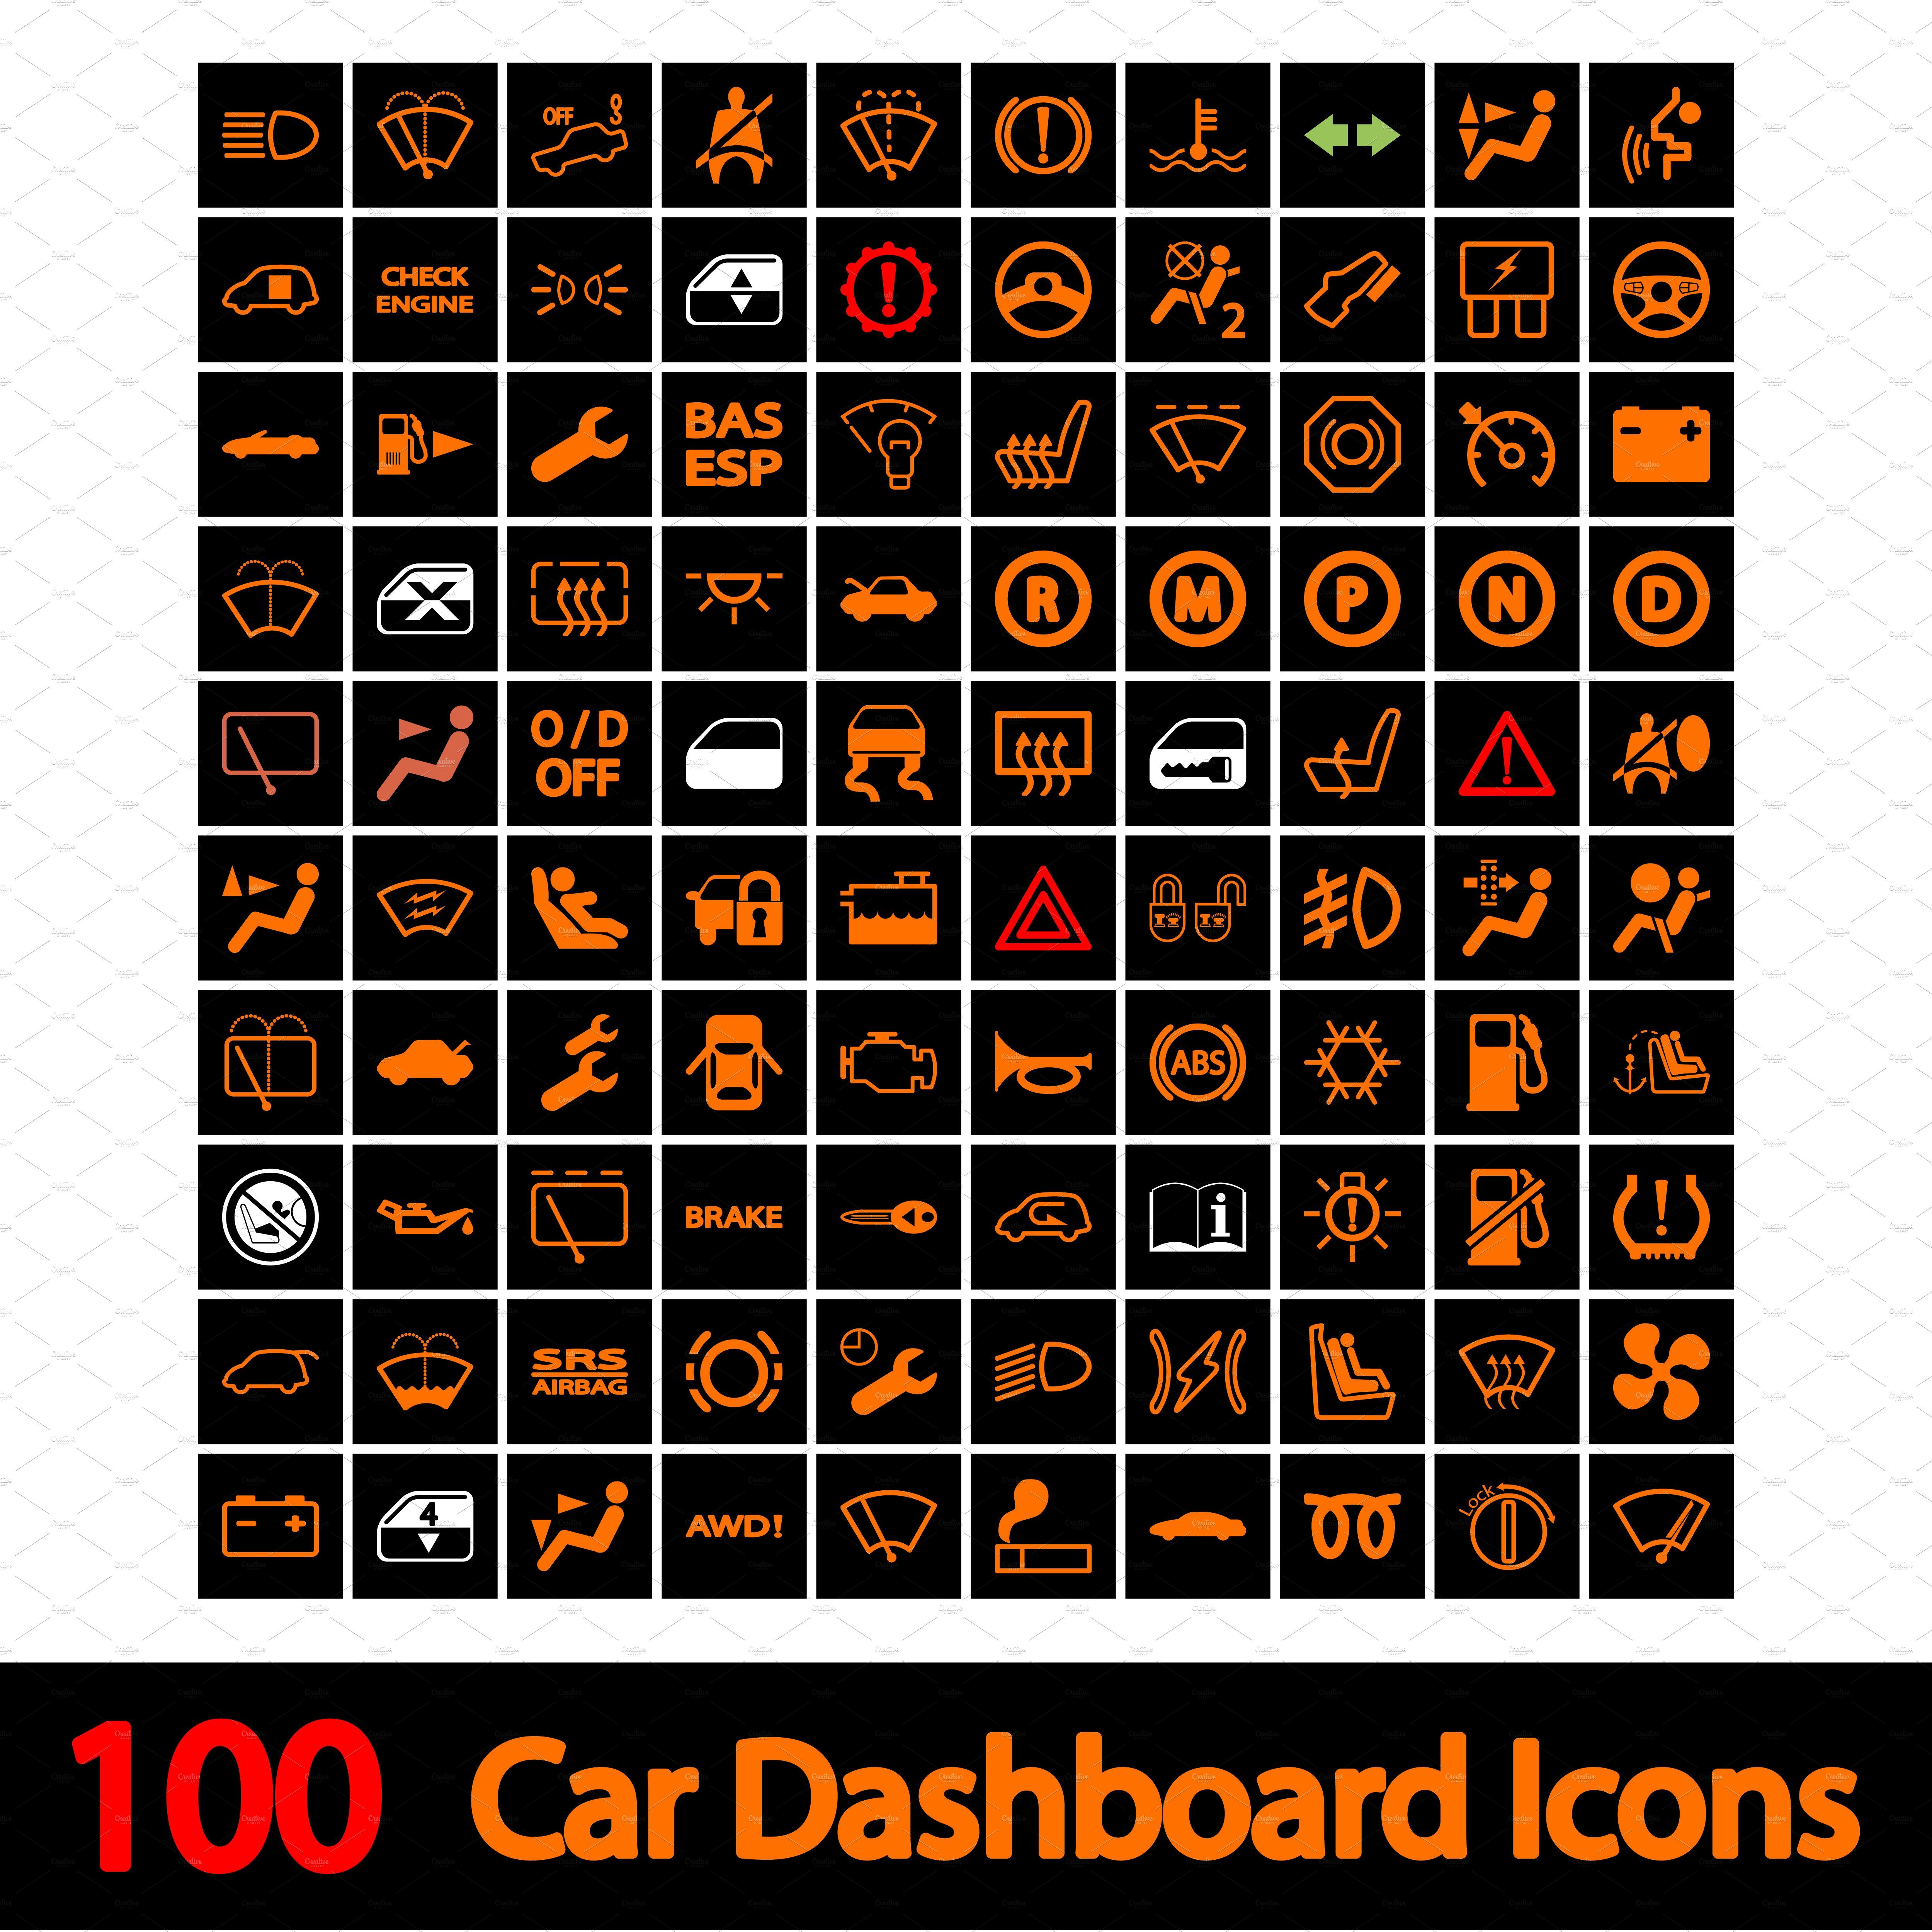 100 Car Dashboard Icons By Oleksii On Creativemarket Icon Car Vector Illustration